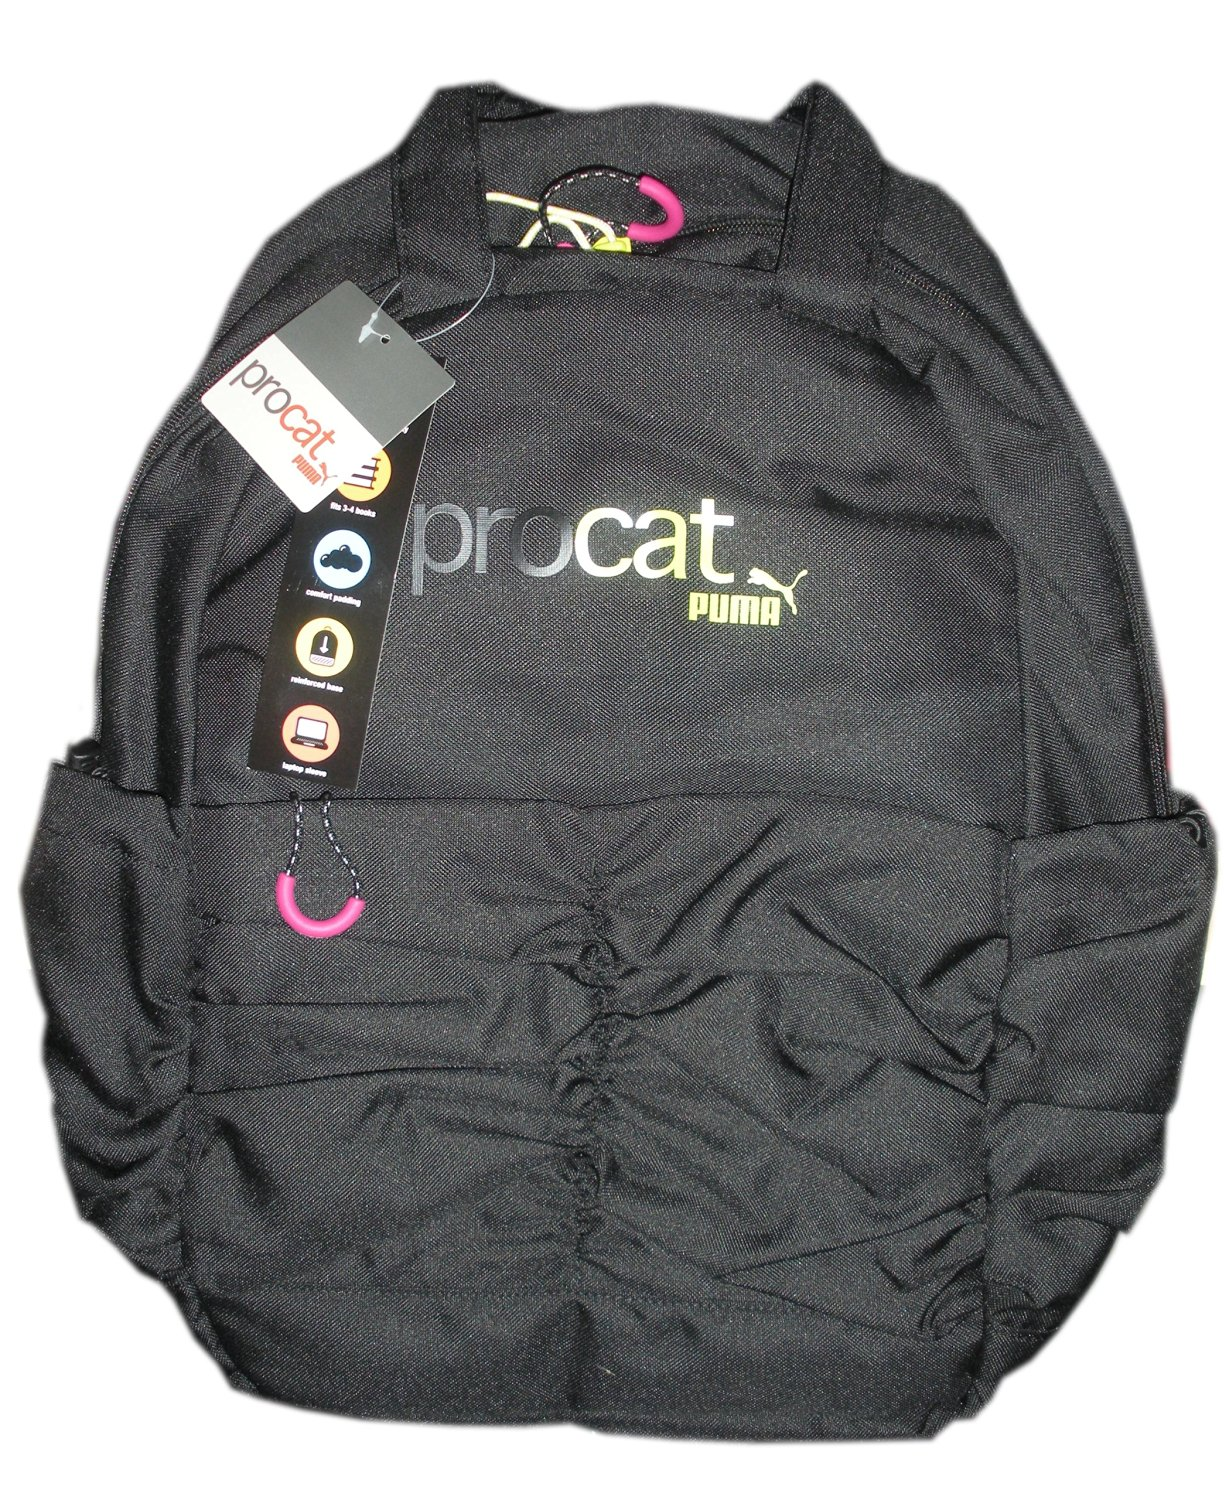 9d0d53b26f Buy Puma Traction Backpack - Black in Cheap Price on Alibaba.com